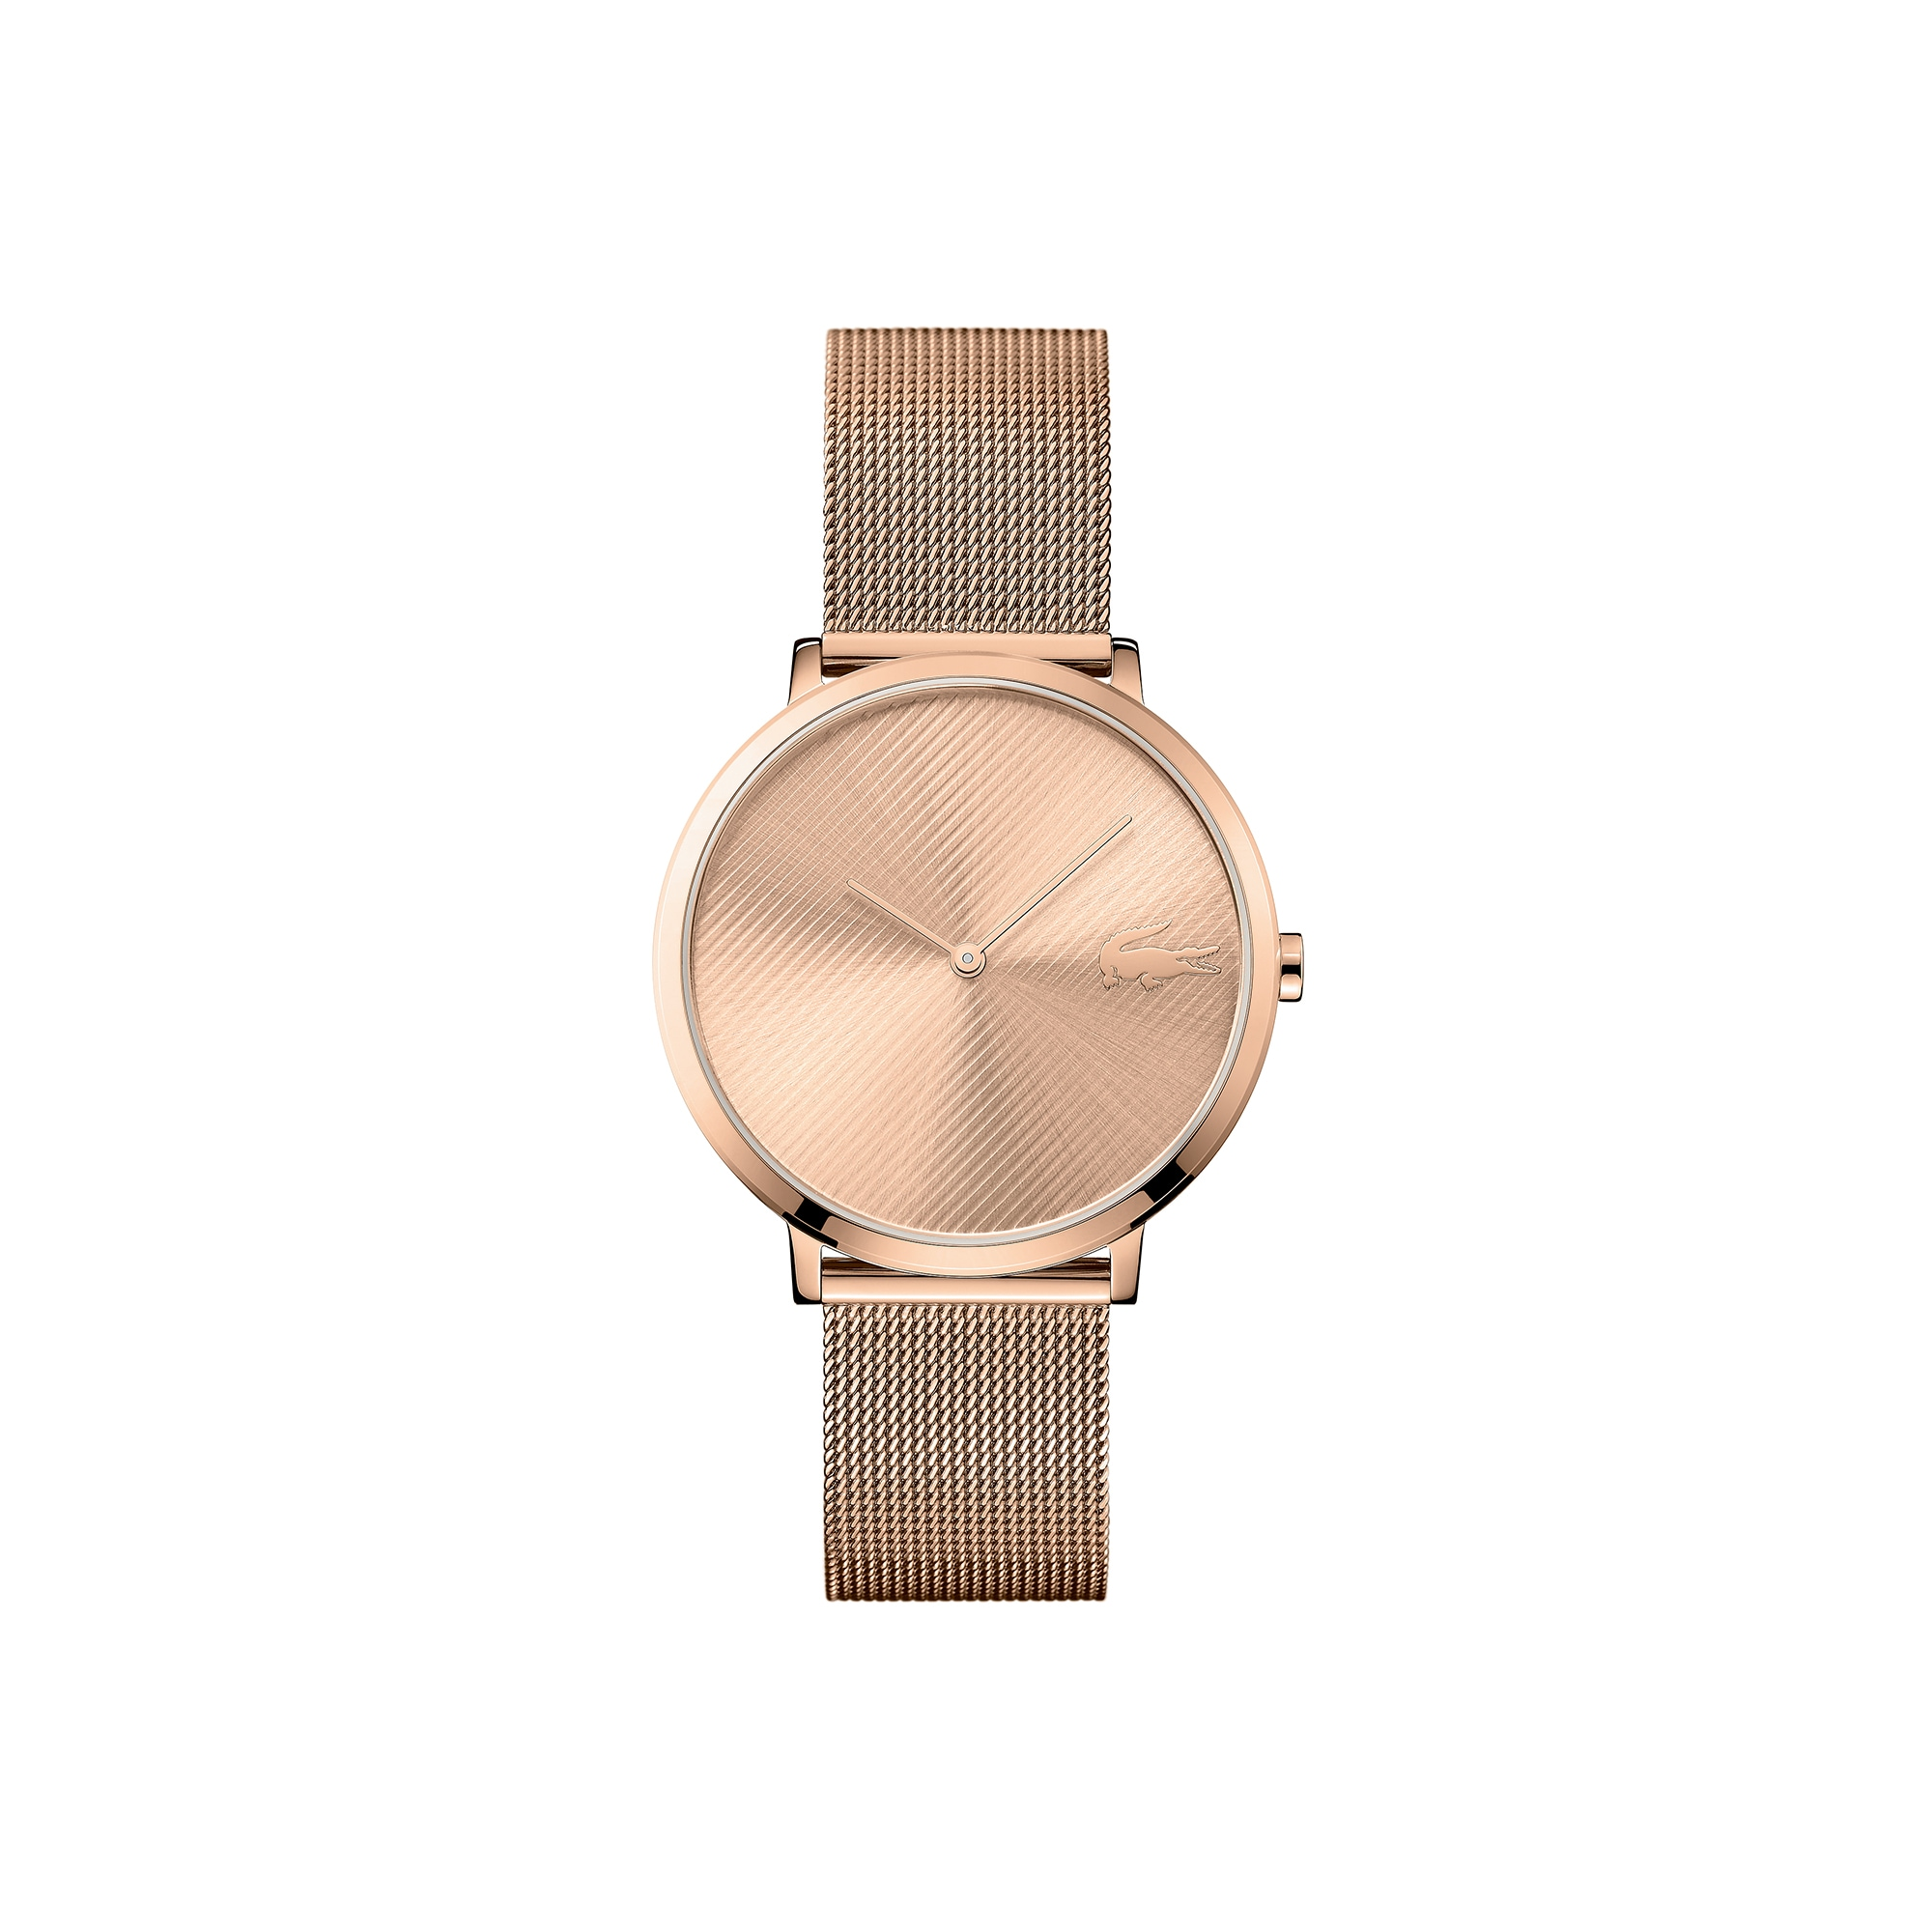 Women's Moon Ultra Slim Watch with Rose Gold Plated Mesh Bracelet